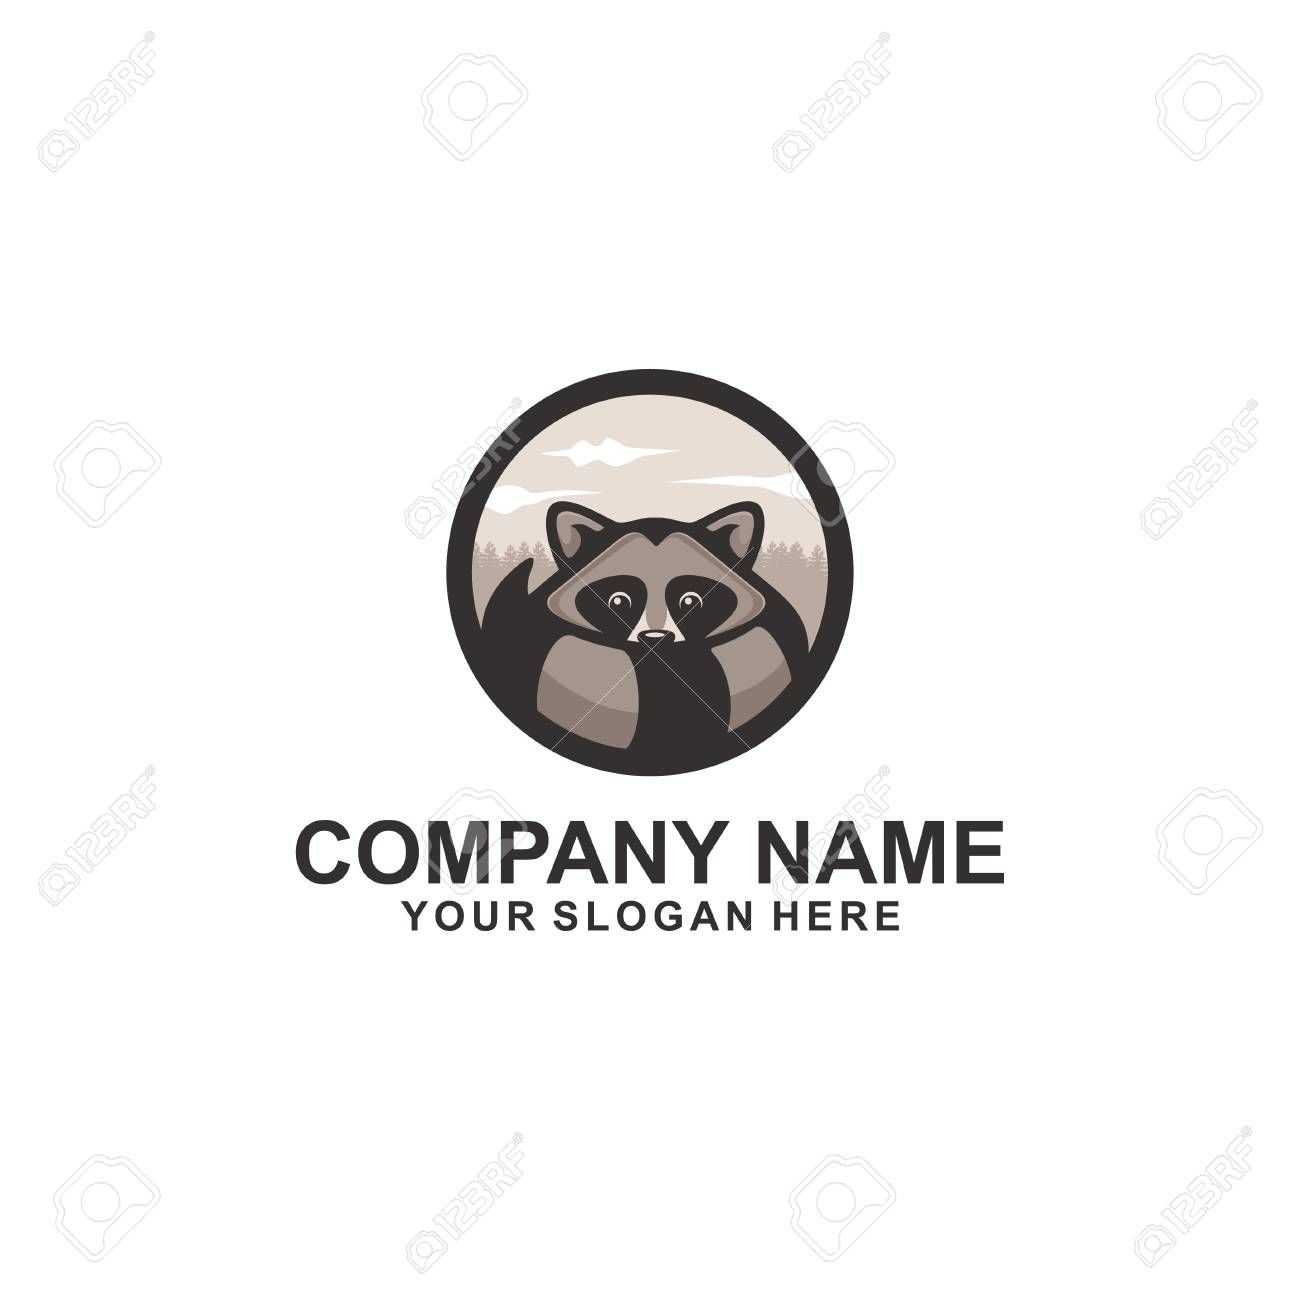 Raccoon logo design Illustration , ad, logo, Raccoon,